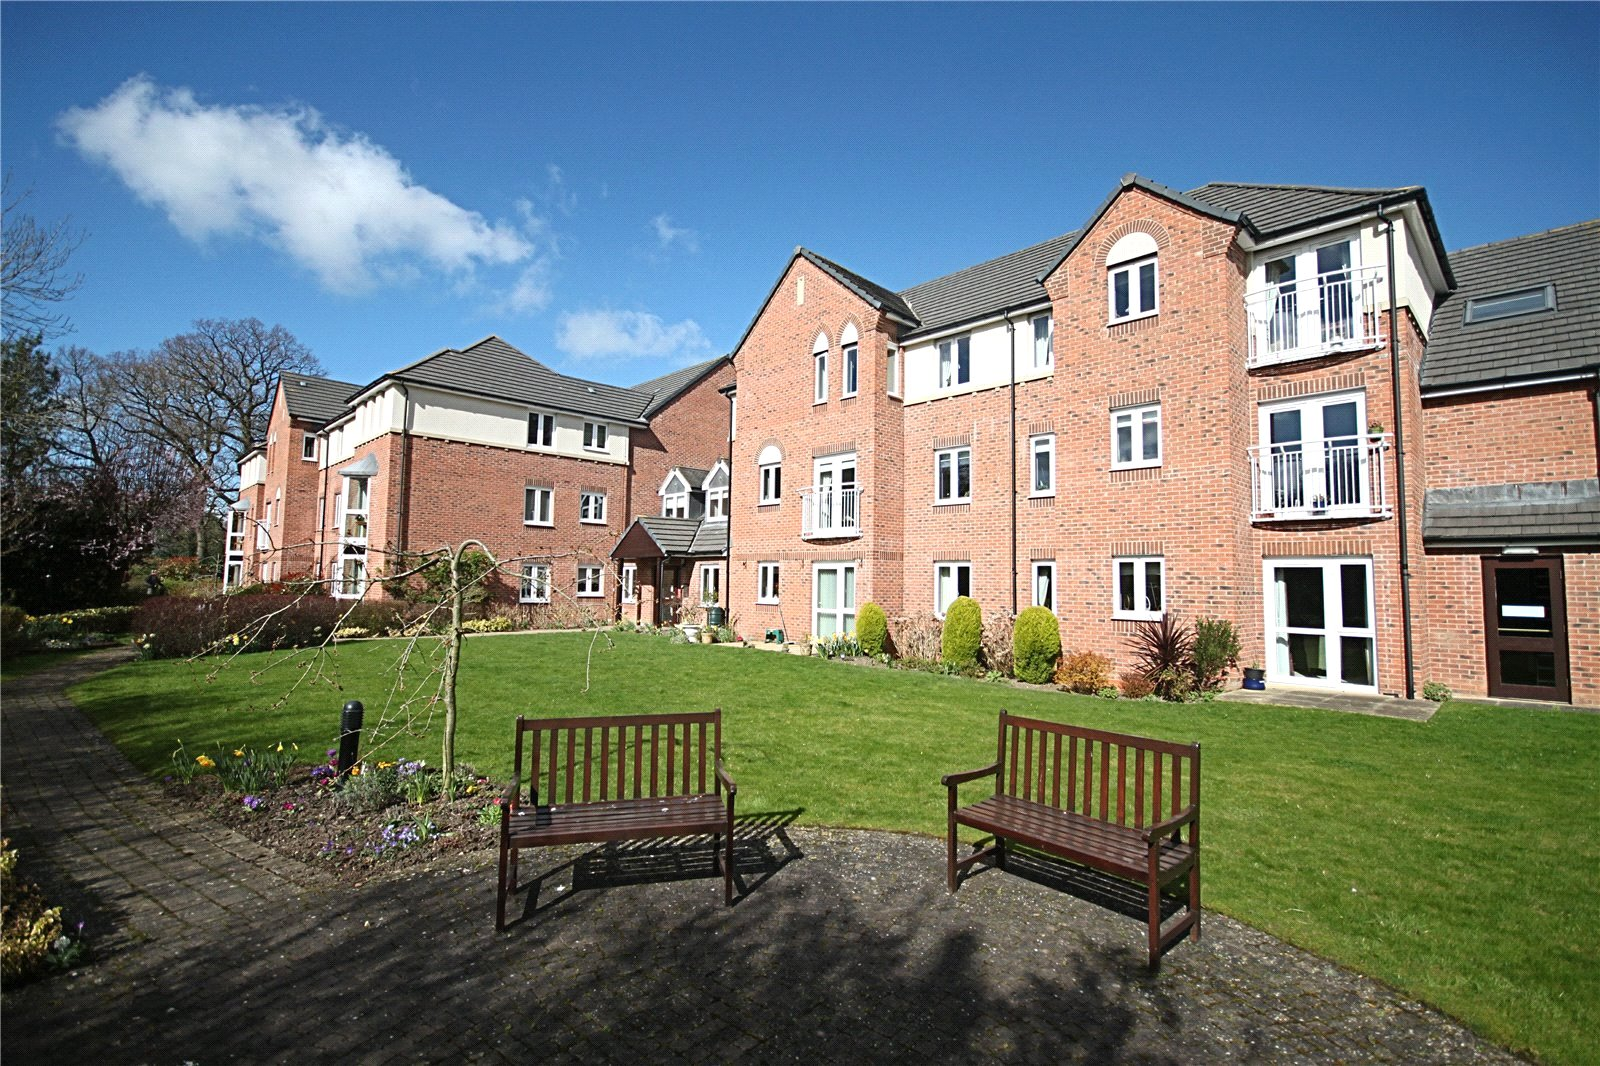 1 bed for sale in The Avenue, Eaglescliffe - Property Image 1